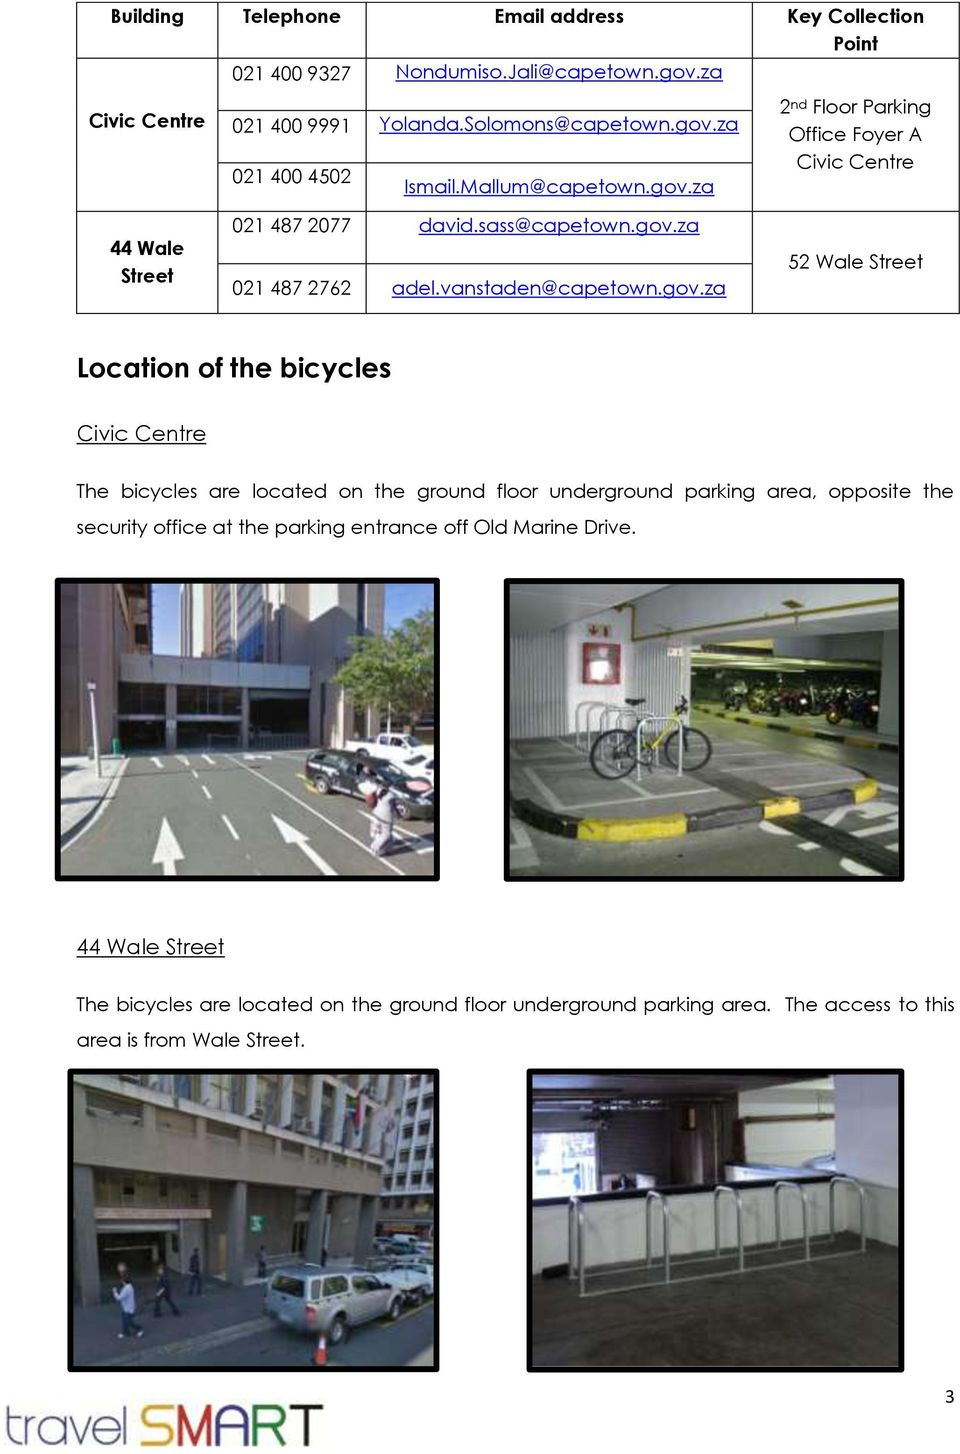 za 2 nd Floor Parking Office Foyer A Civic Centre 44 Wale Street 021 487 2077 david.sass@capetown.gov.